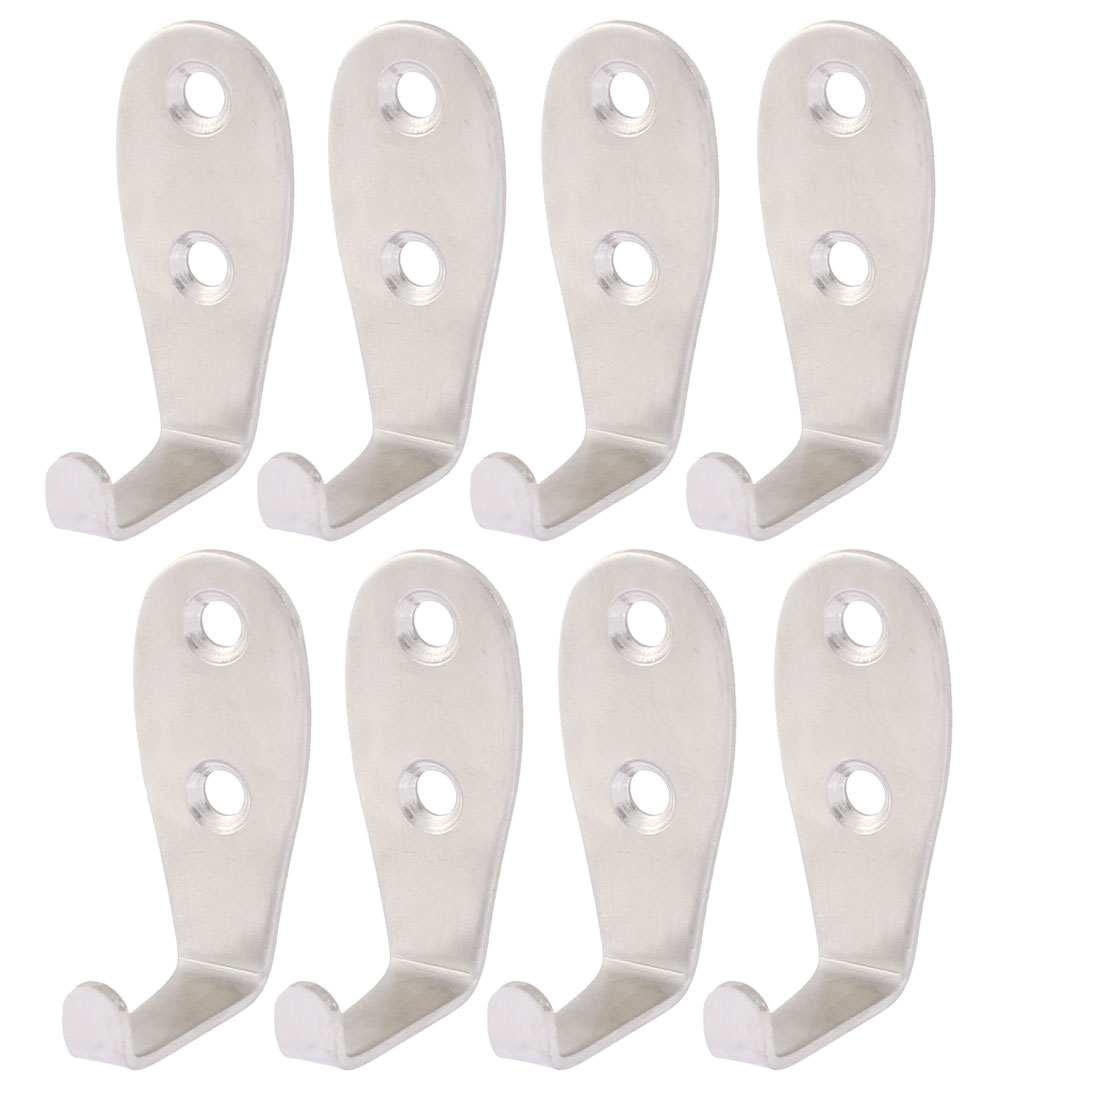 Hat Coat Towel L Shaped Wall Mounted Single Hook Hanger 2mm Thickness 8PCS